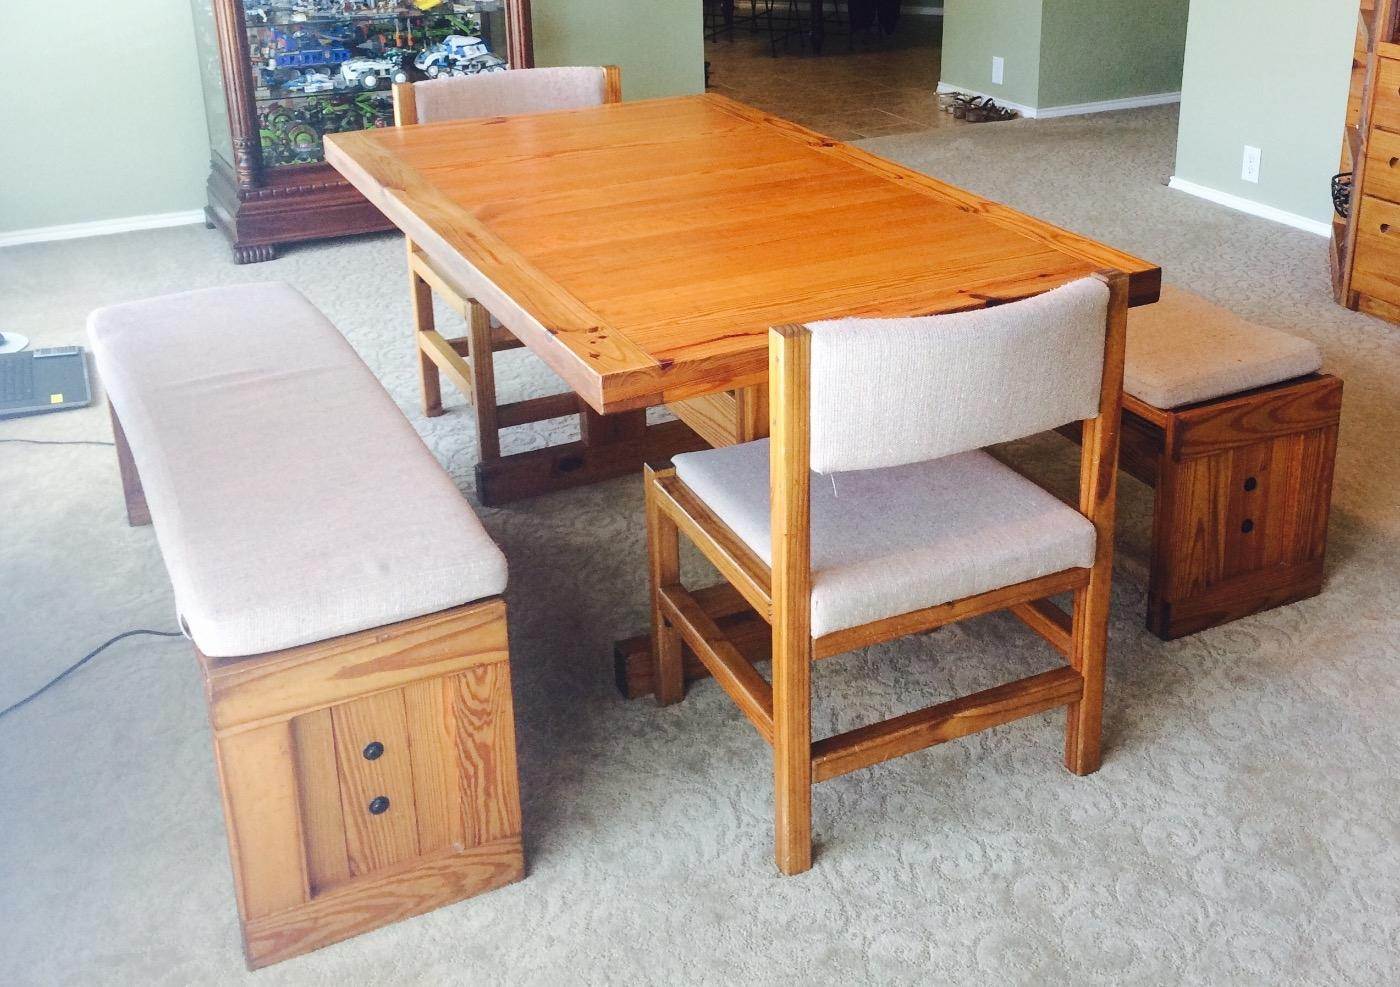 Find More This End Up Furniture Dining Table For Sale At Up To 90 Off